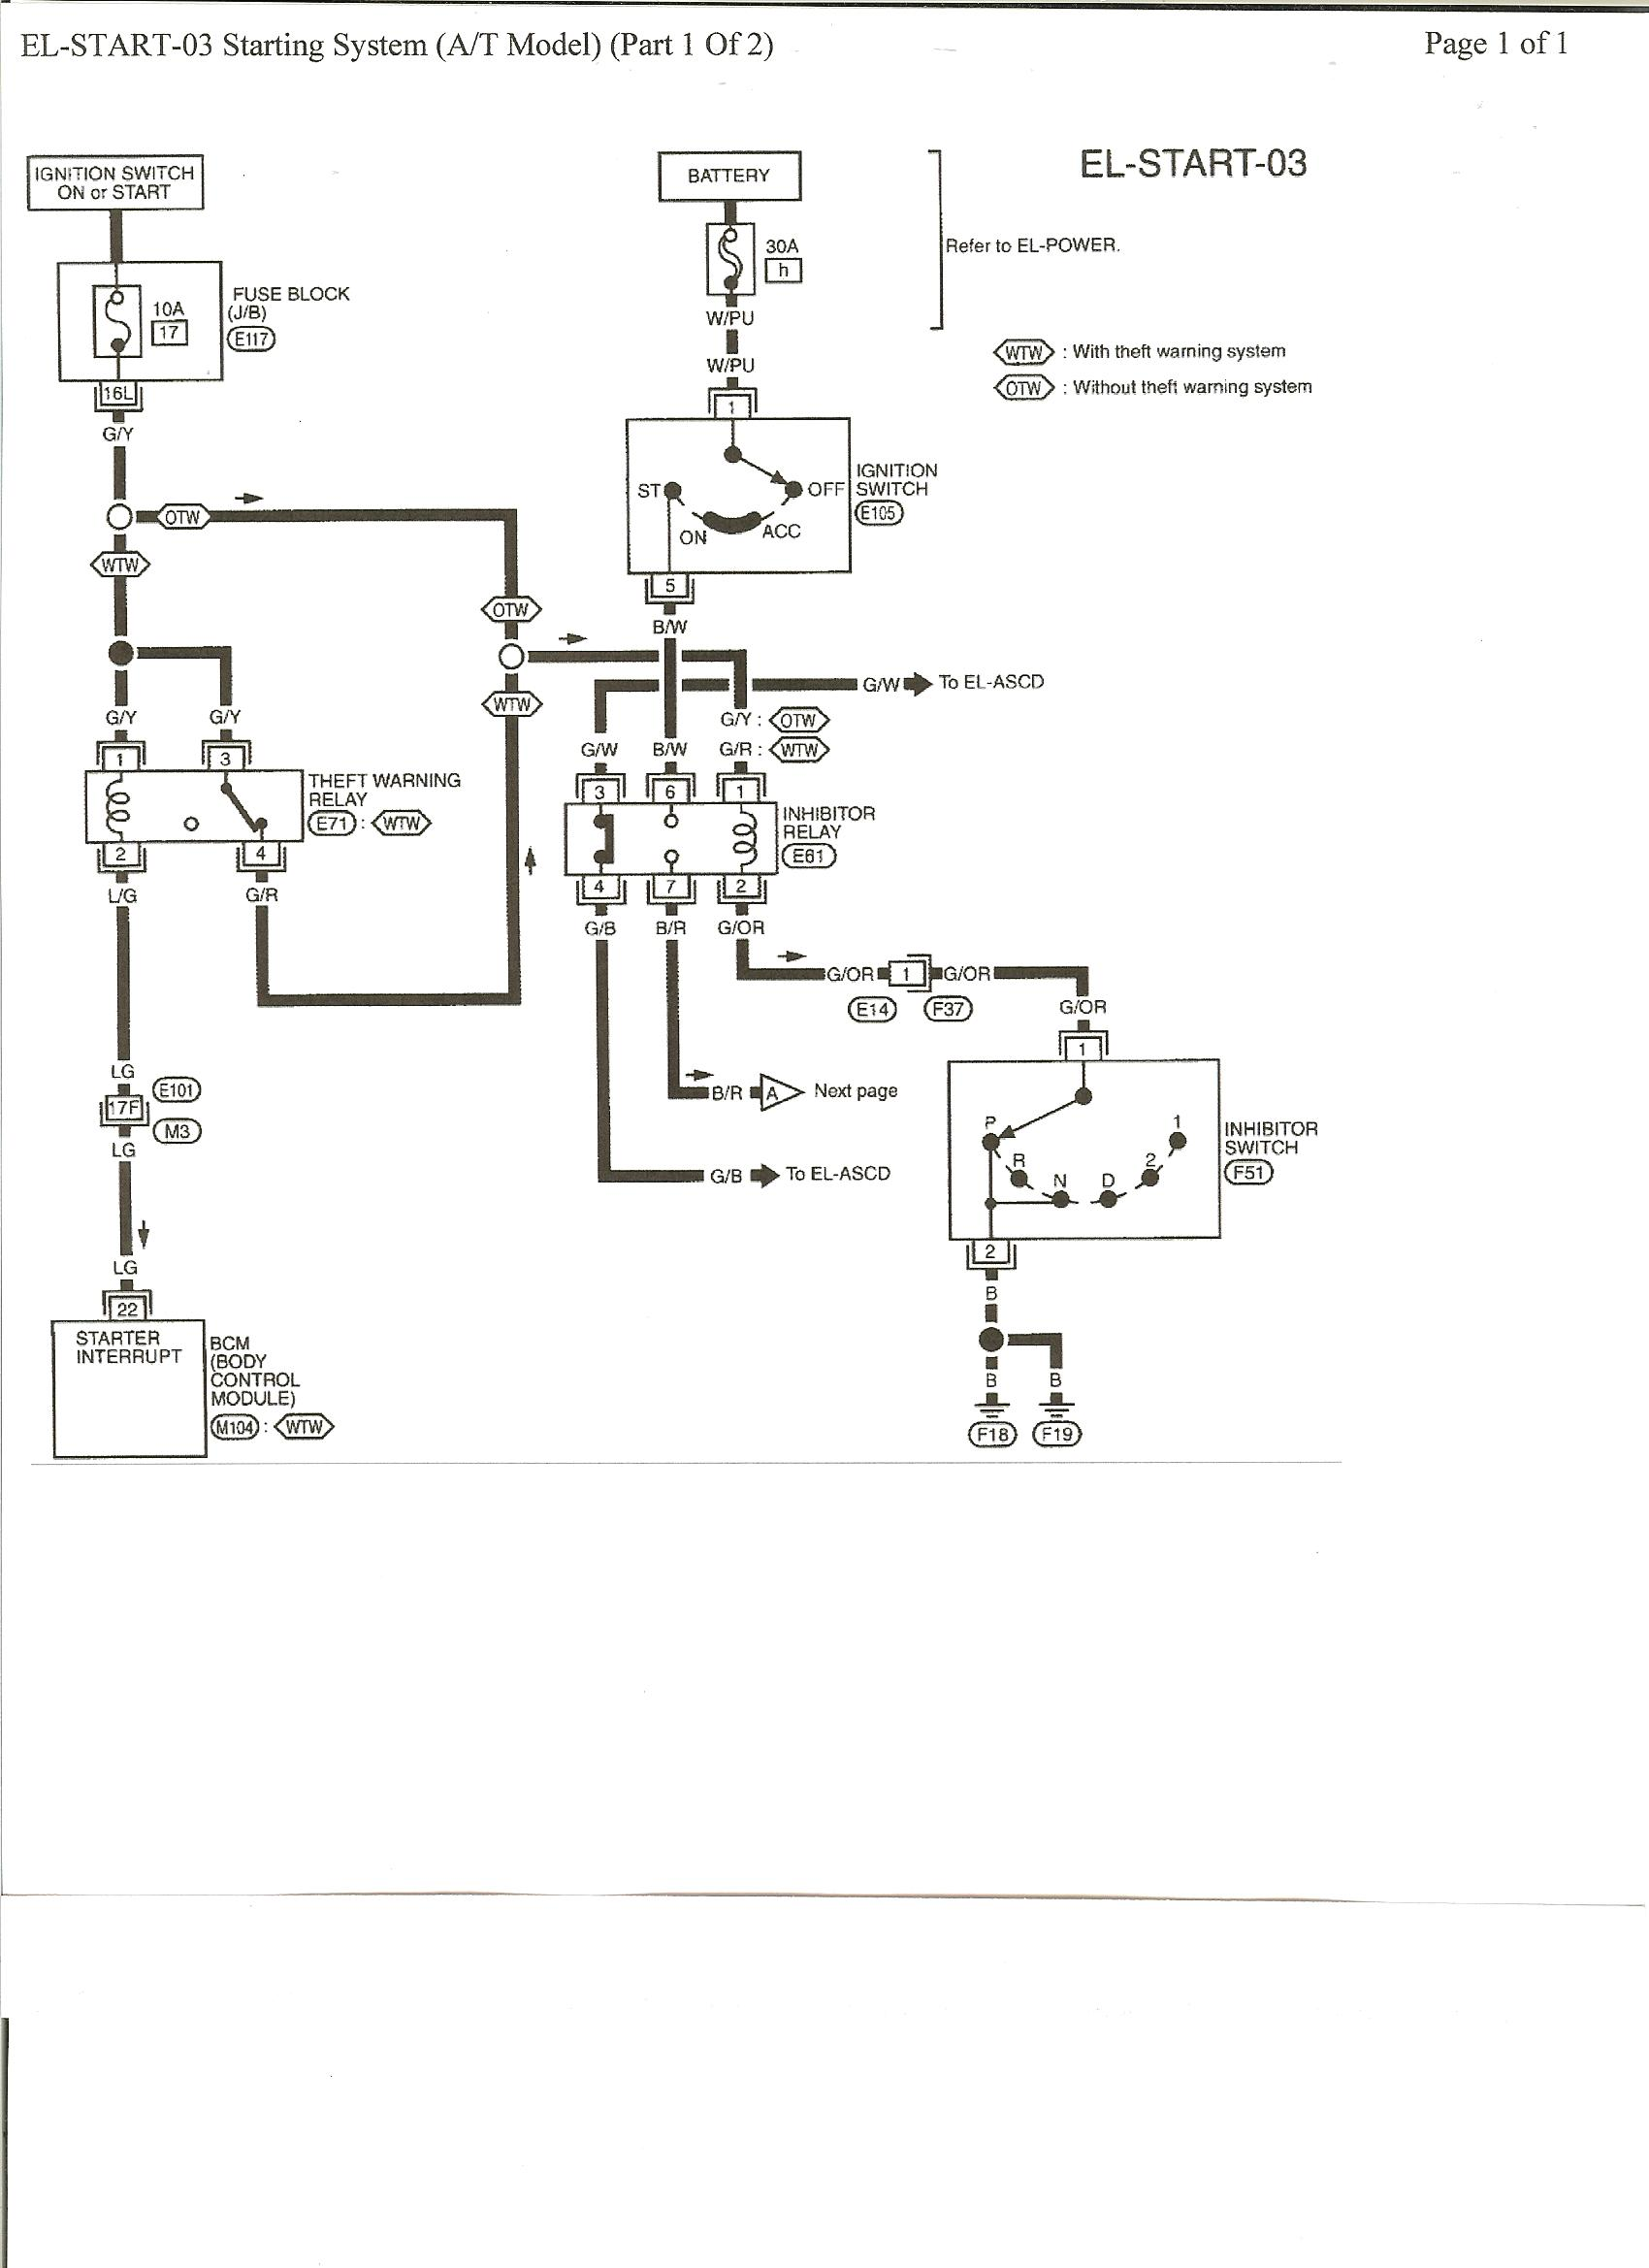 1999 isuzu amigo wiring diagram html with 2004 Maxima Wiring Harness For Starter on 1999 Chevy Blazer Fuse Box Mirrors together with 1992 Isuzu Amigo Wiring Diagram moreover Fuse Box 1995 Isuzu Trooper moreover 2004 Hyundai Tiburon Radio Wiring Diagram moreover Isuzu Trooper 3 0 1998 Specs And Images.